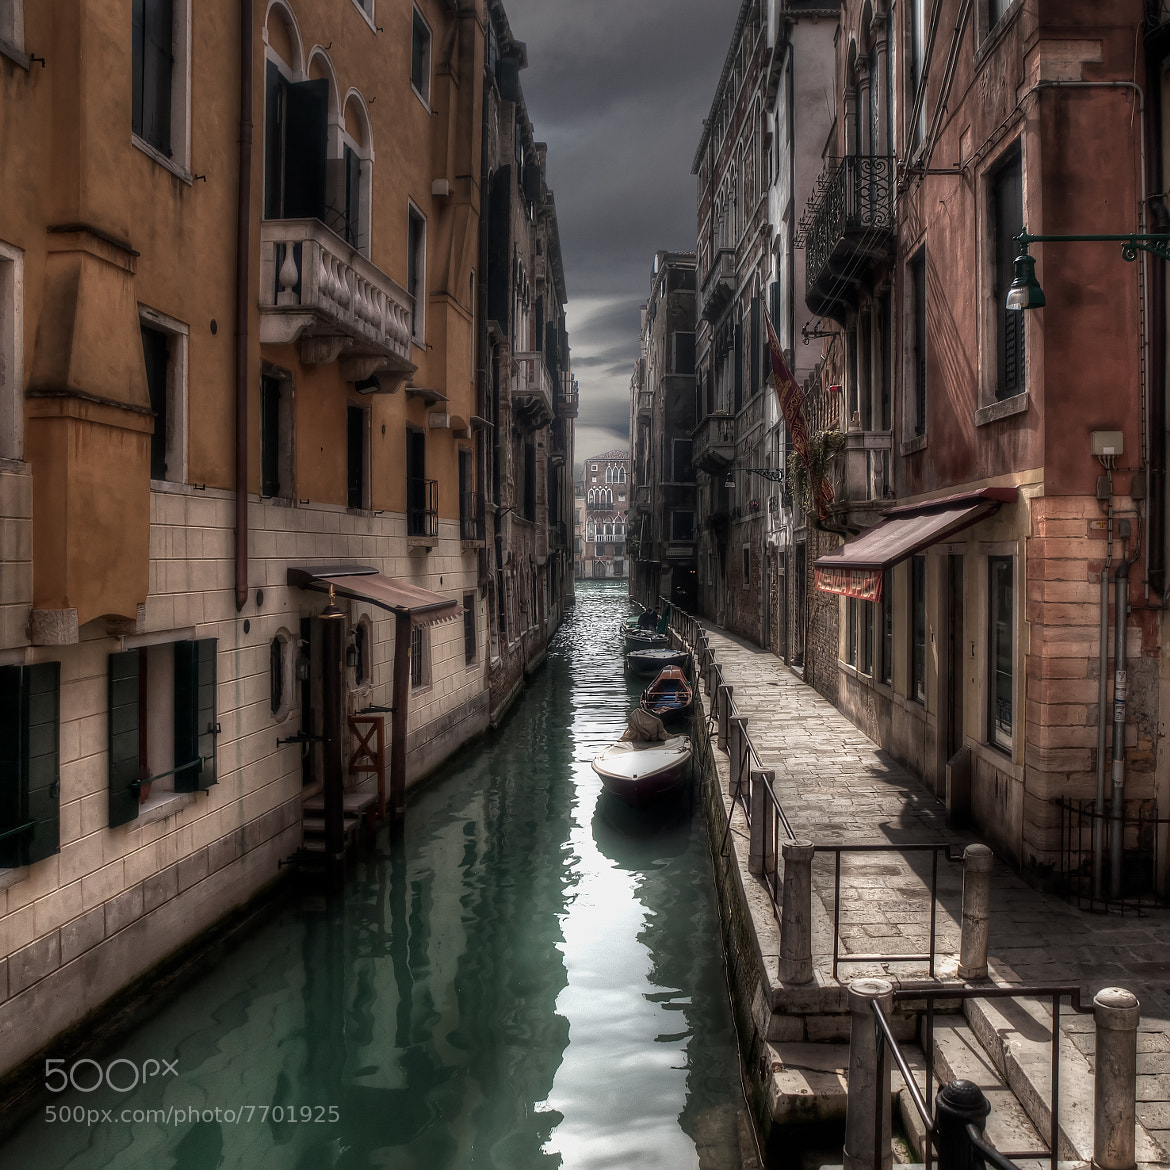 Photograph Canales by Fermín Noain on 500px